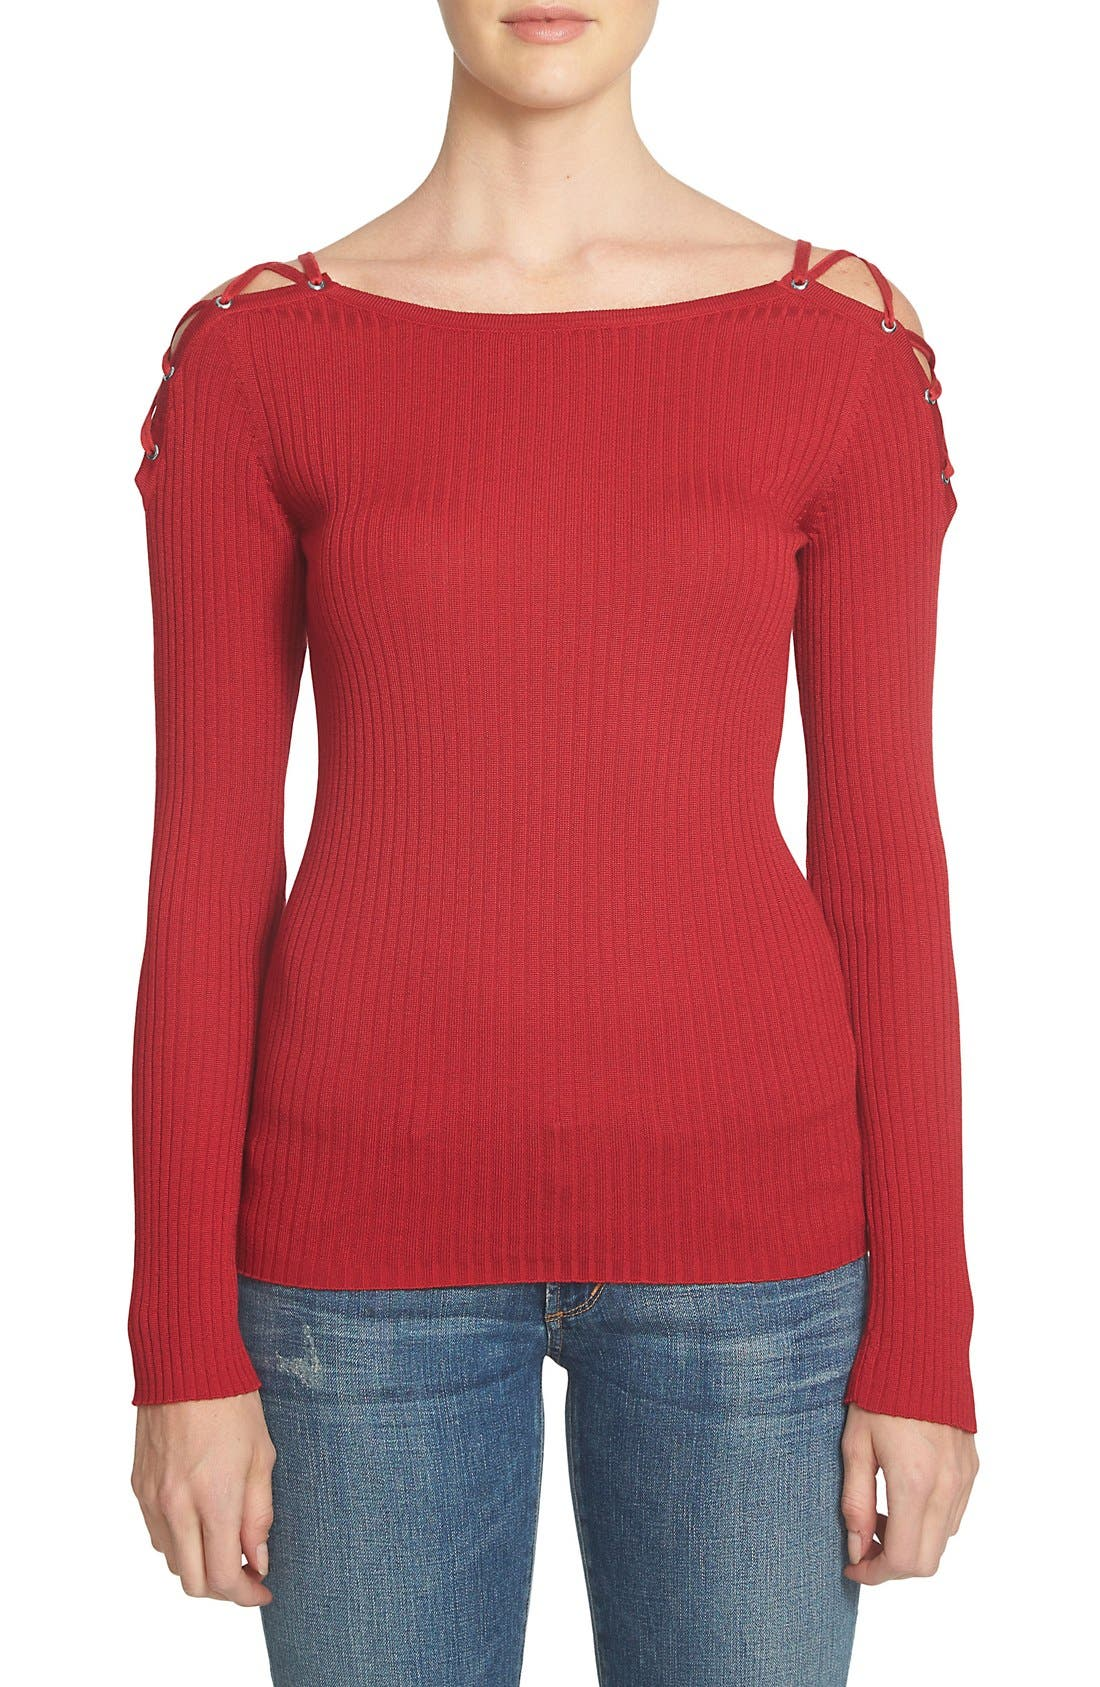 Main Image - 1.STATE Lace-Up Shoulder Cotton Sweater